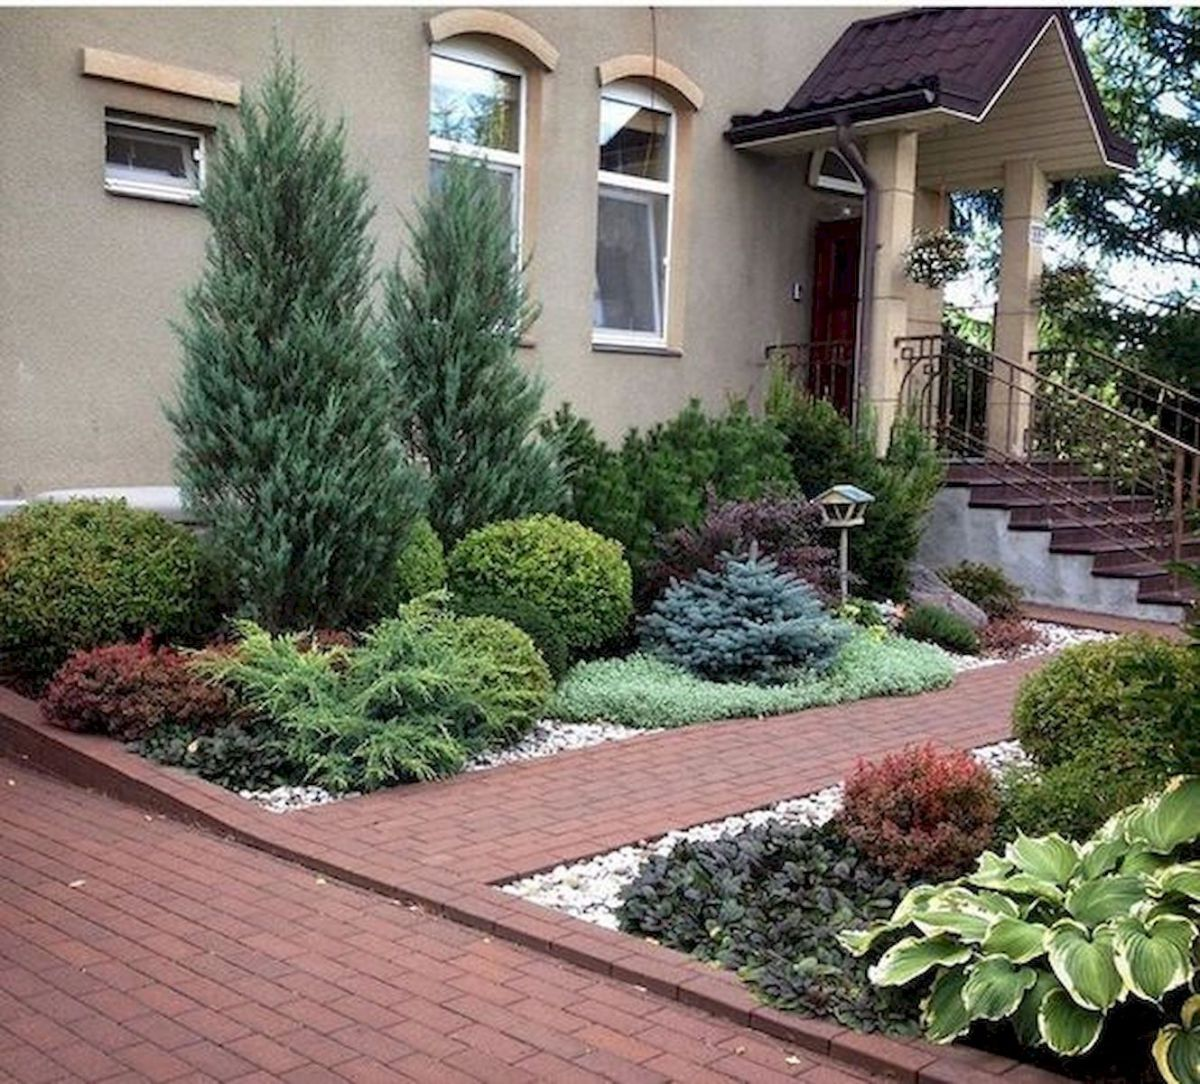 Simple Landscape Designs: 90 Simple And Beautiful Front Yard Landscaping Ideas On A